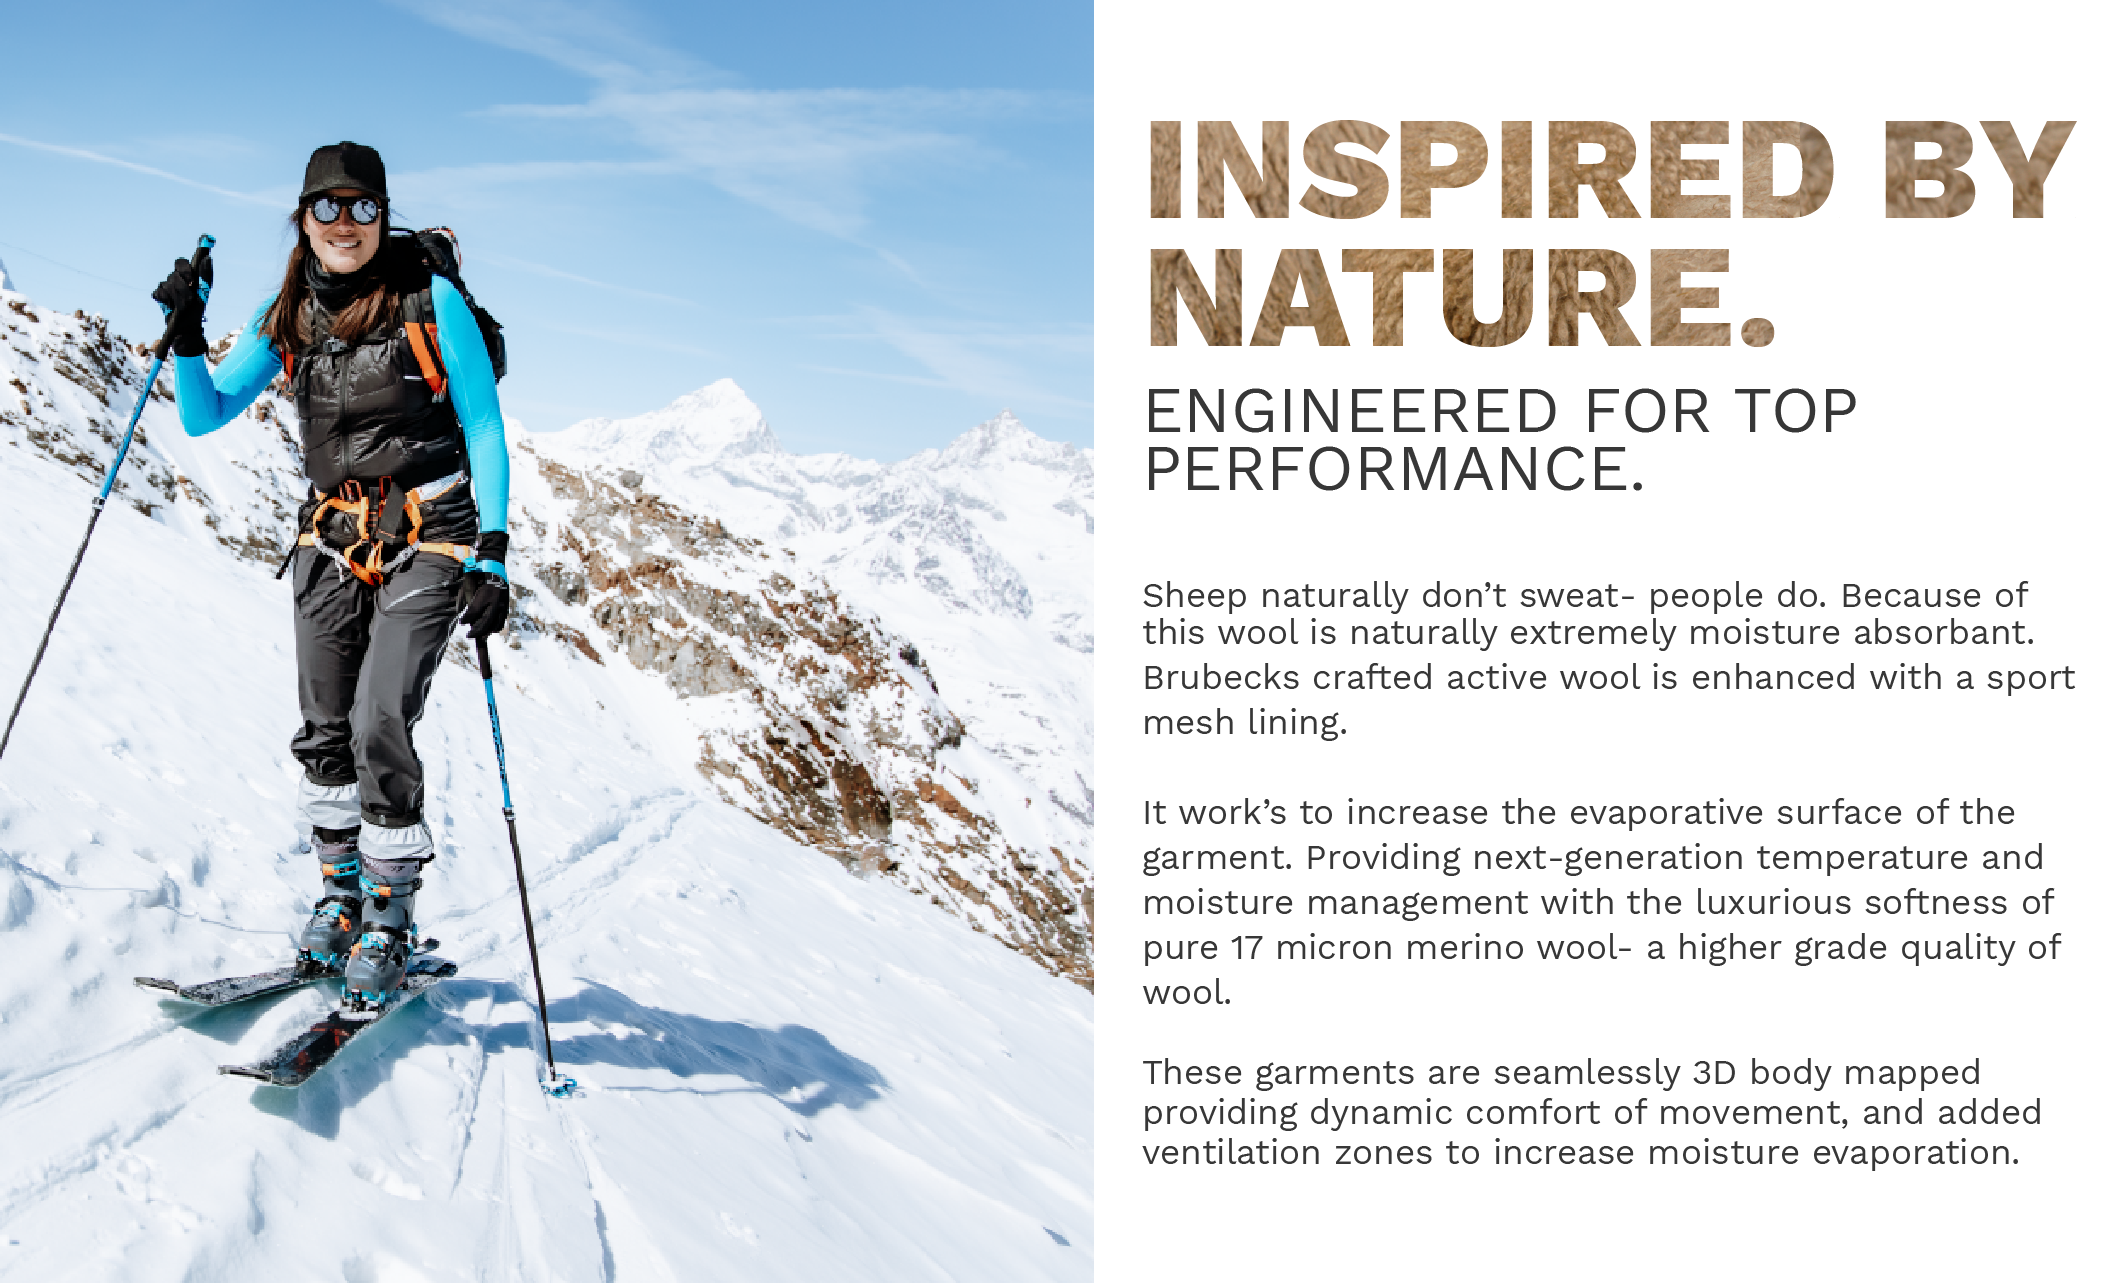 Inspired by nature, engineered for top performance. Sheep naturally don't sweat- people do. Because of this wool is naturally extremely moisture absorbant.  Brubeck engineered our ultra-fine Merino Wool base layer's to include an sport-mesh lining.   It work's to increase the evaporative surface of the garment. Providing next-generation temperature and moisture management with the luxurious softness of 17 micron merino wool.   These garments are seamlessly 3D body mapped  providing dynamic comfort of movement, and added ventilation zones to increase moisture evaporation.